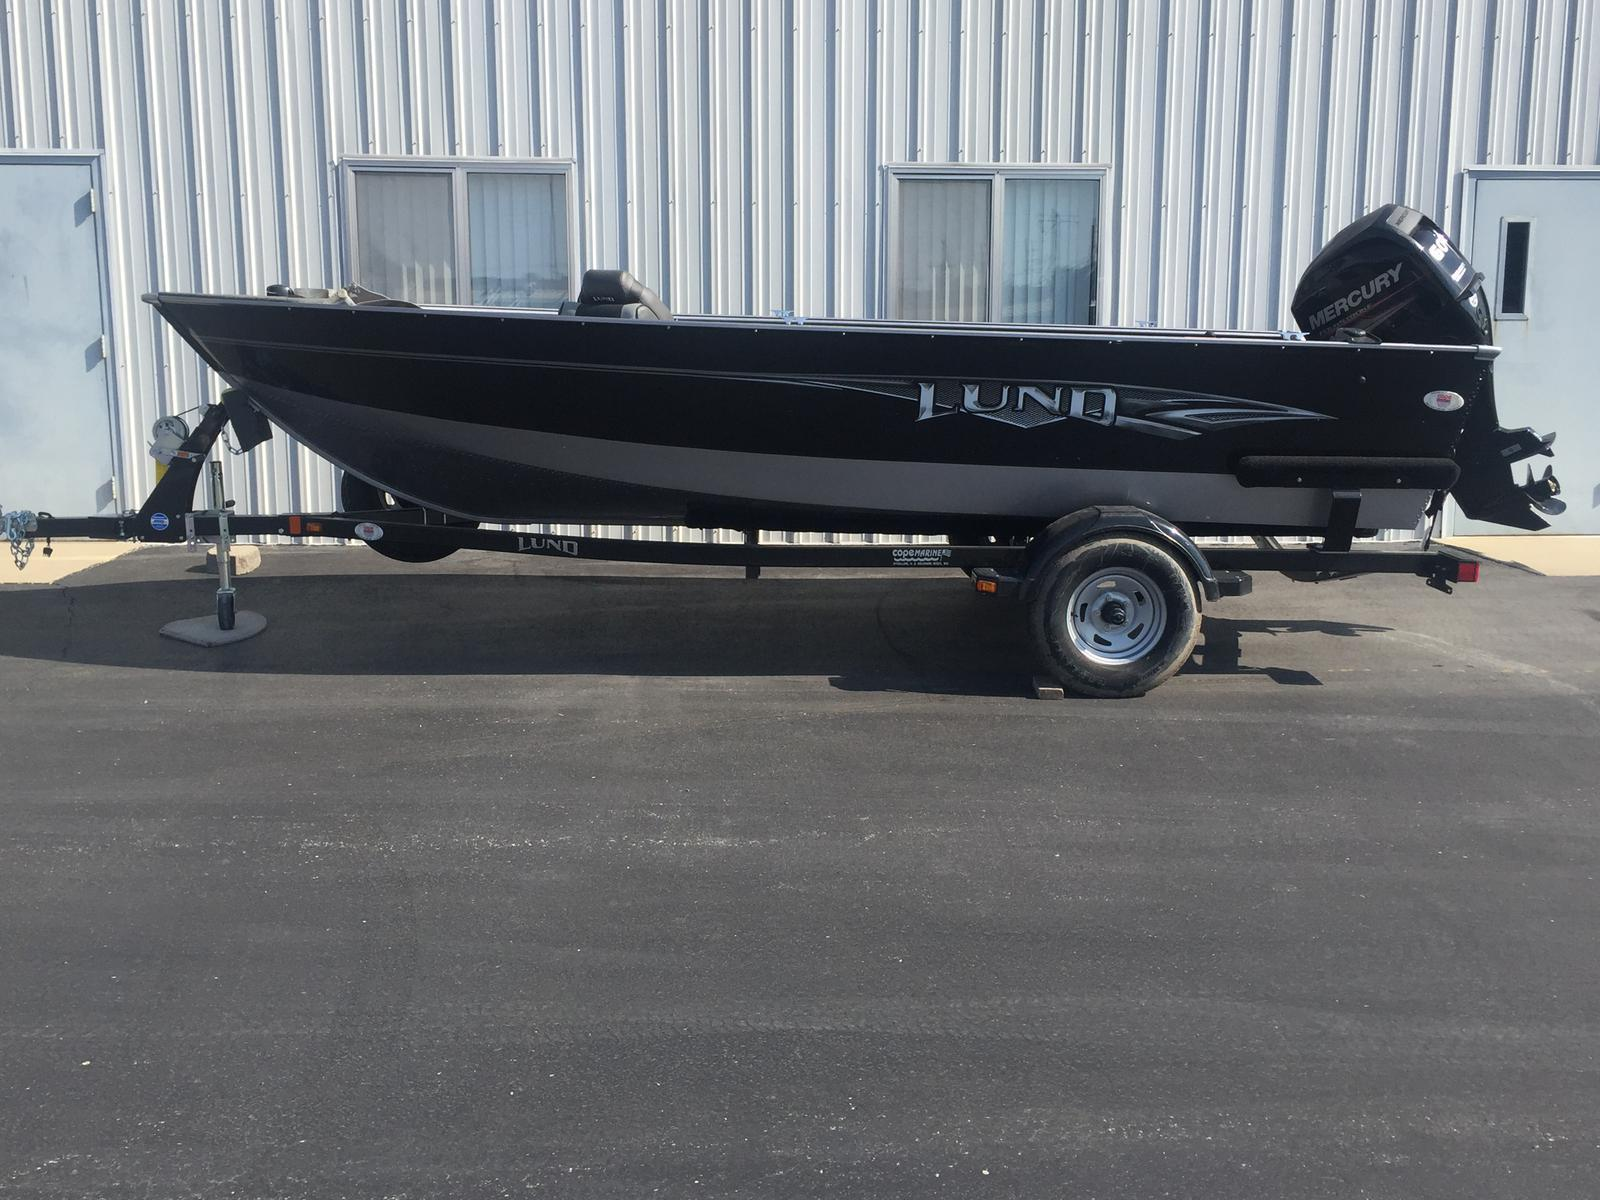 Lund 1650 rebel xl boats for sale for Used lund fishing boats for sale